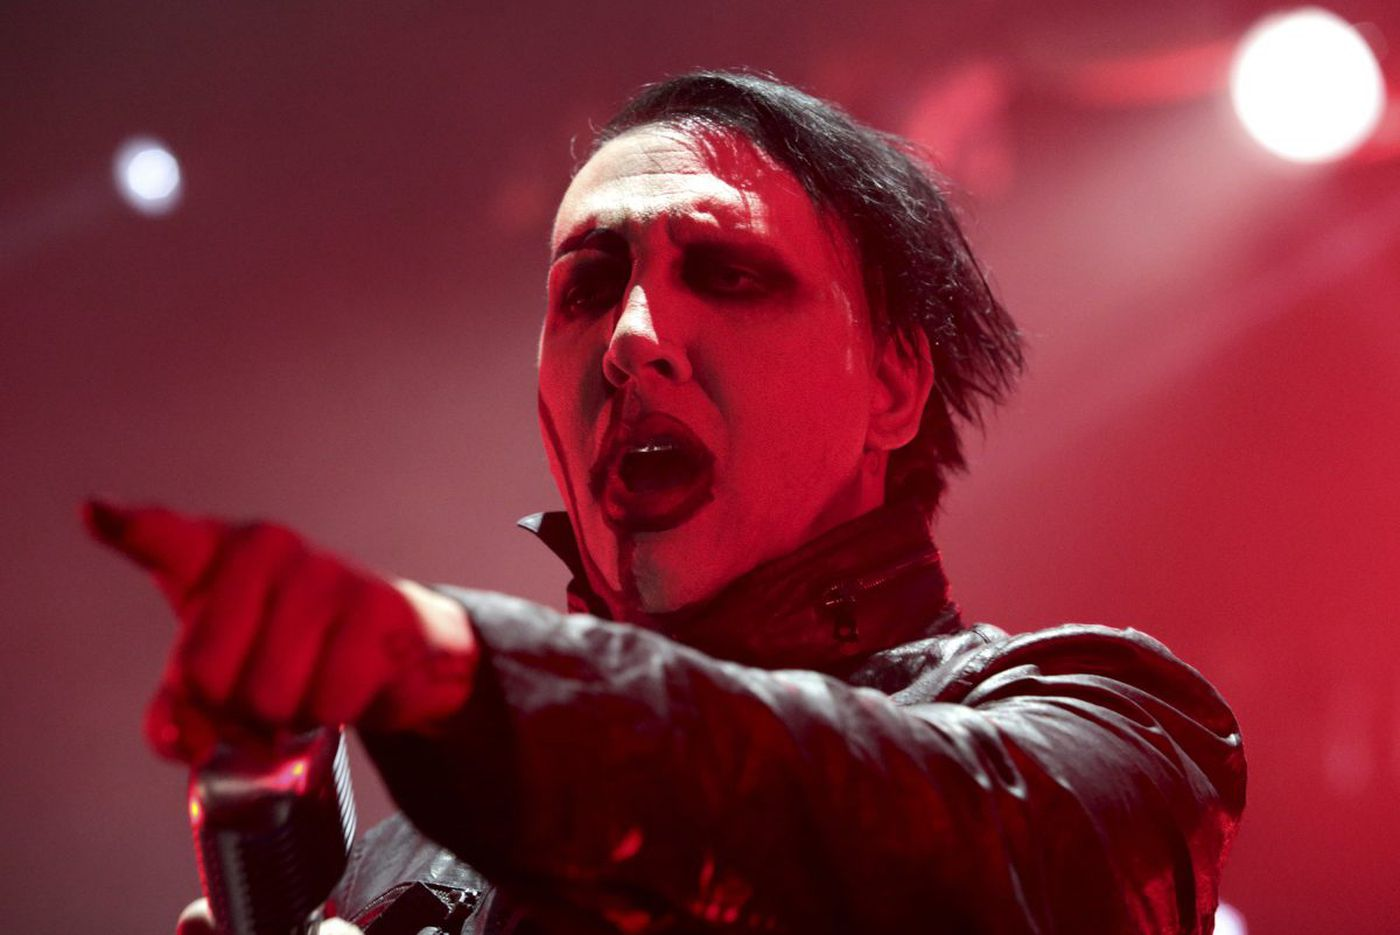 Marilyn Manson cancels tour dates after injury, including Saturday's Camden stop